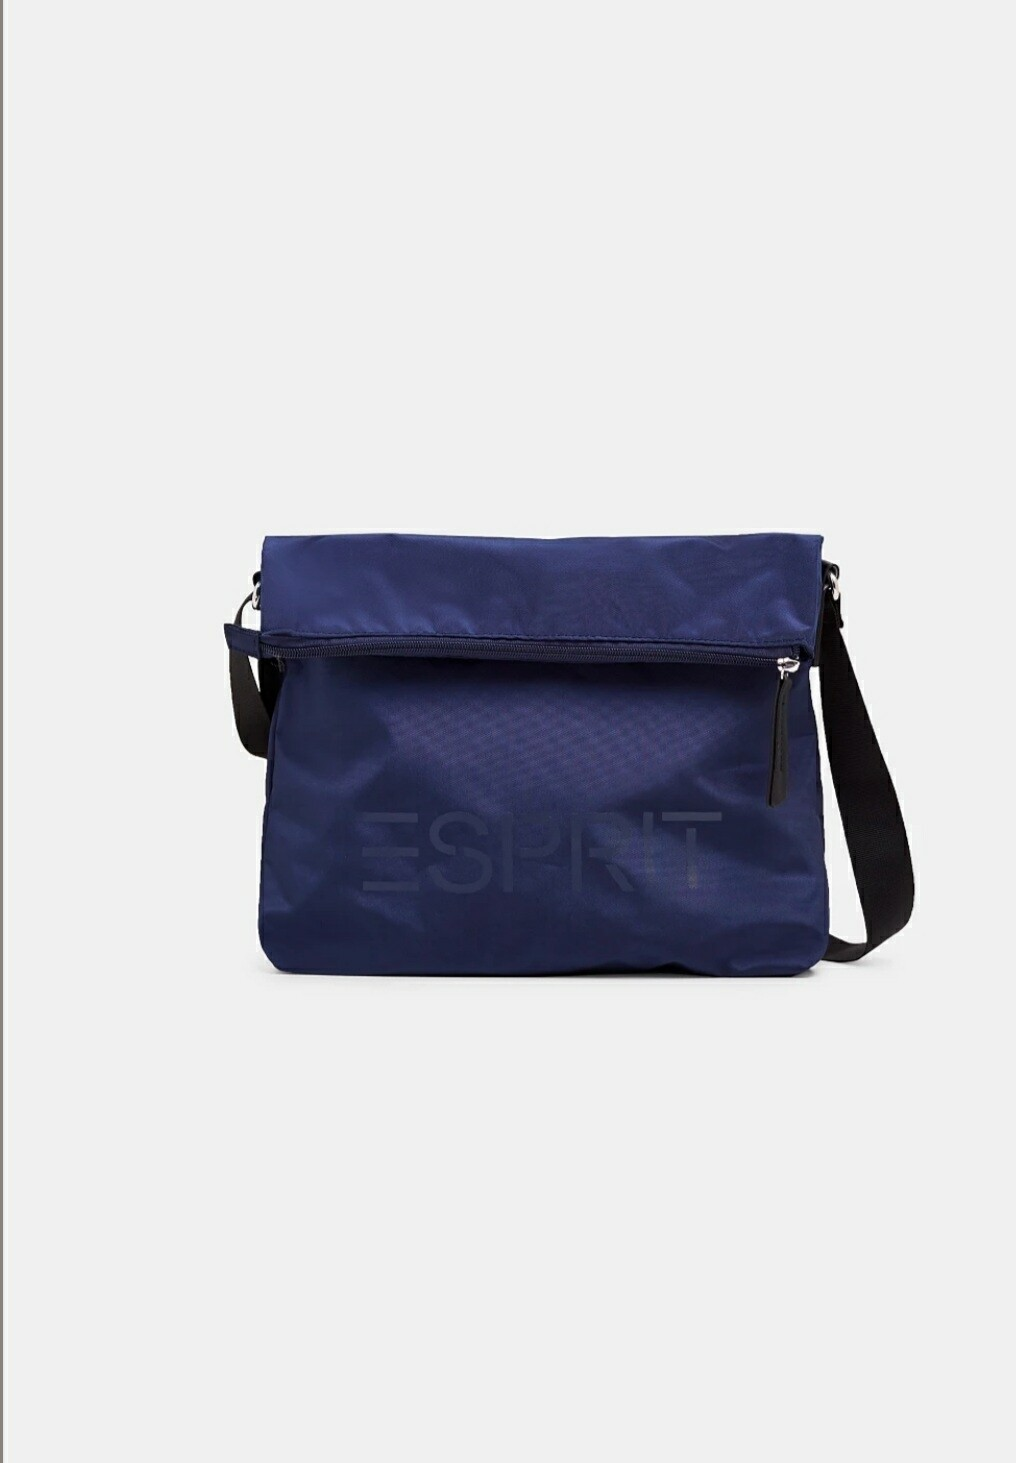 Navy nylon bag with a logo and adjustable clasp